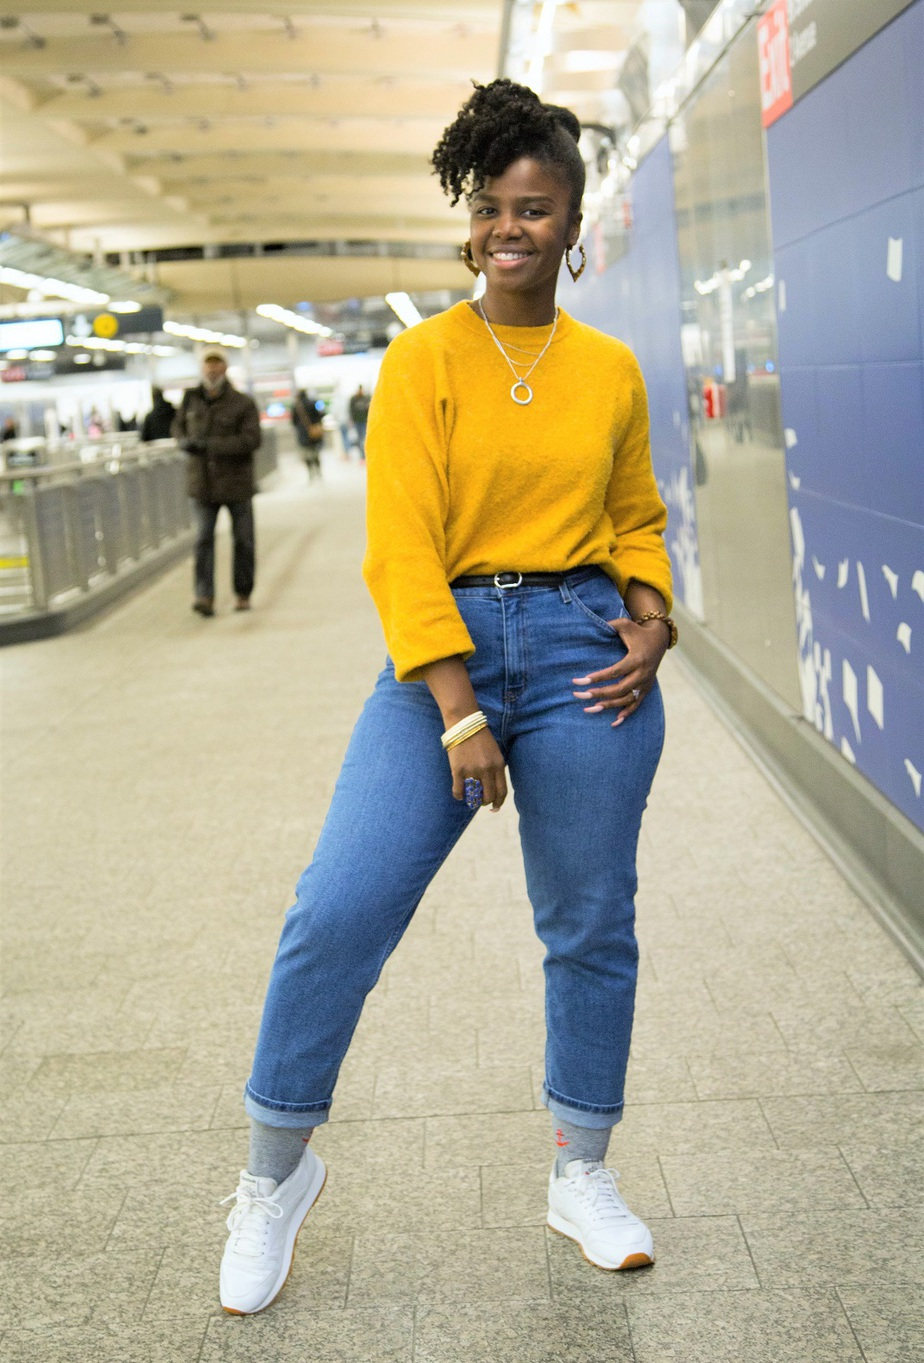 black woman wearing a yellow cozy fall sweater, posed in a NYC train station with one hand in jeans pocket.